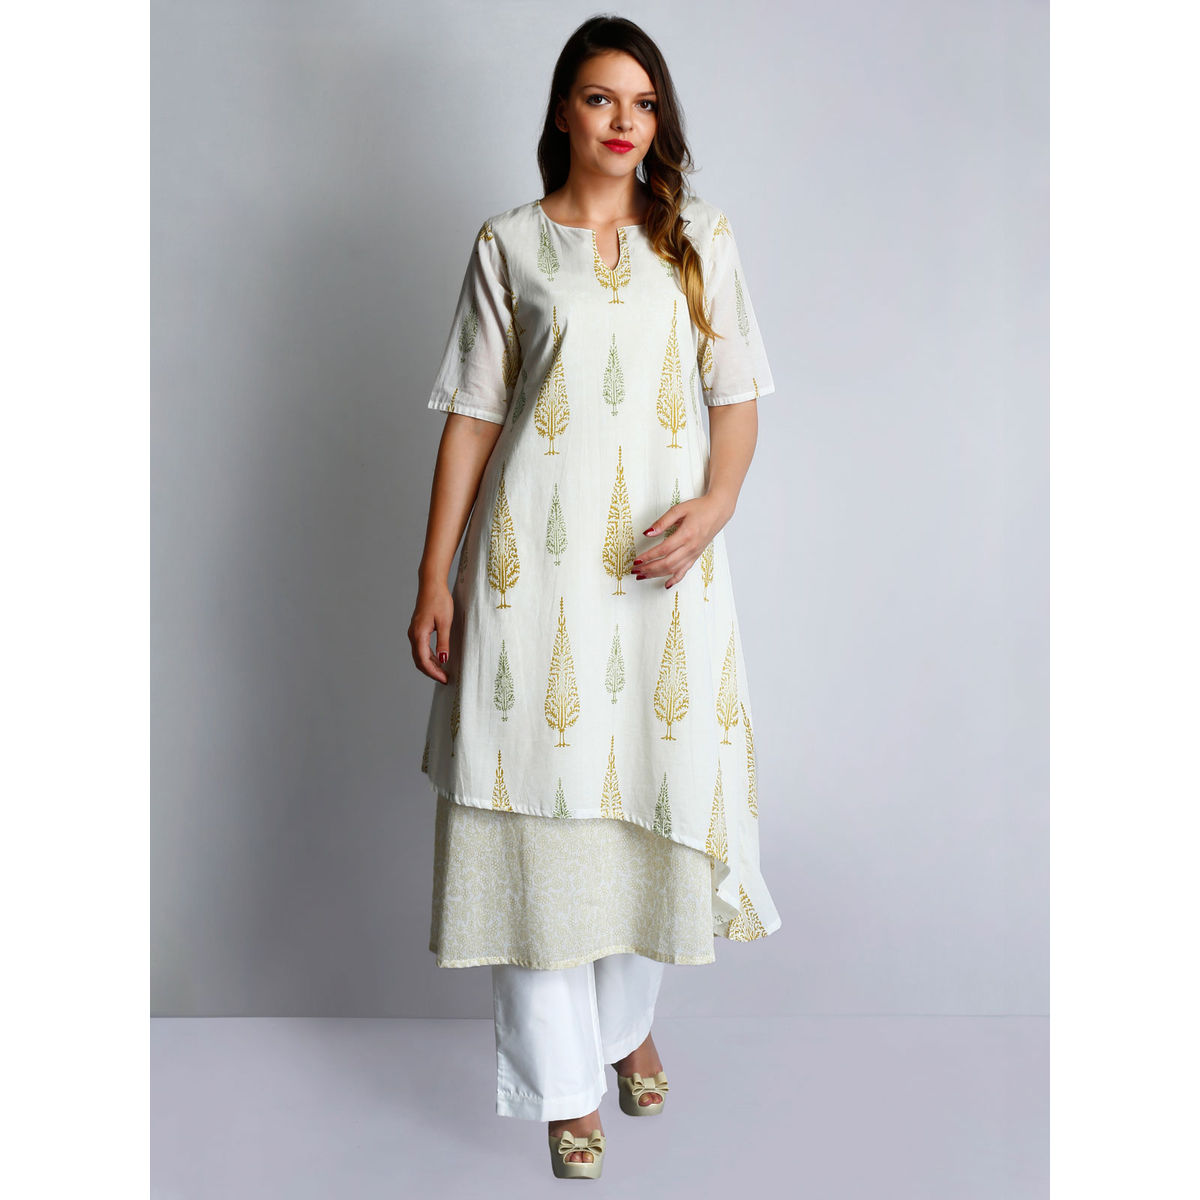 Off-white cotton voile hand block printed layered tunic